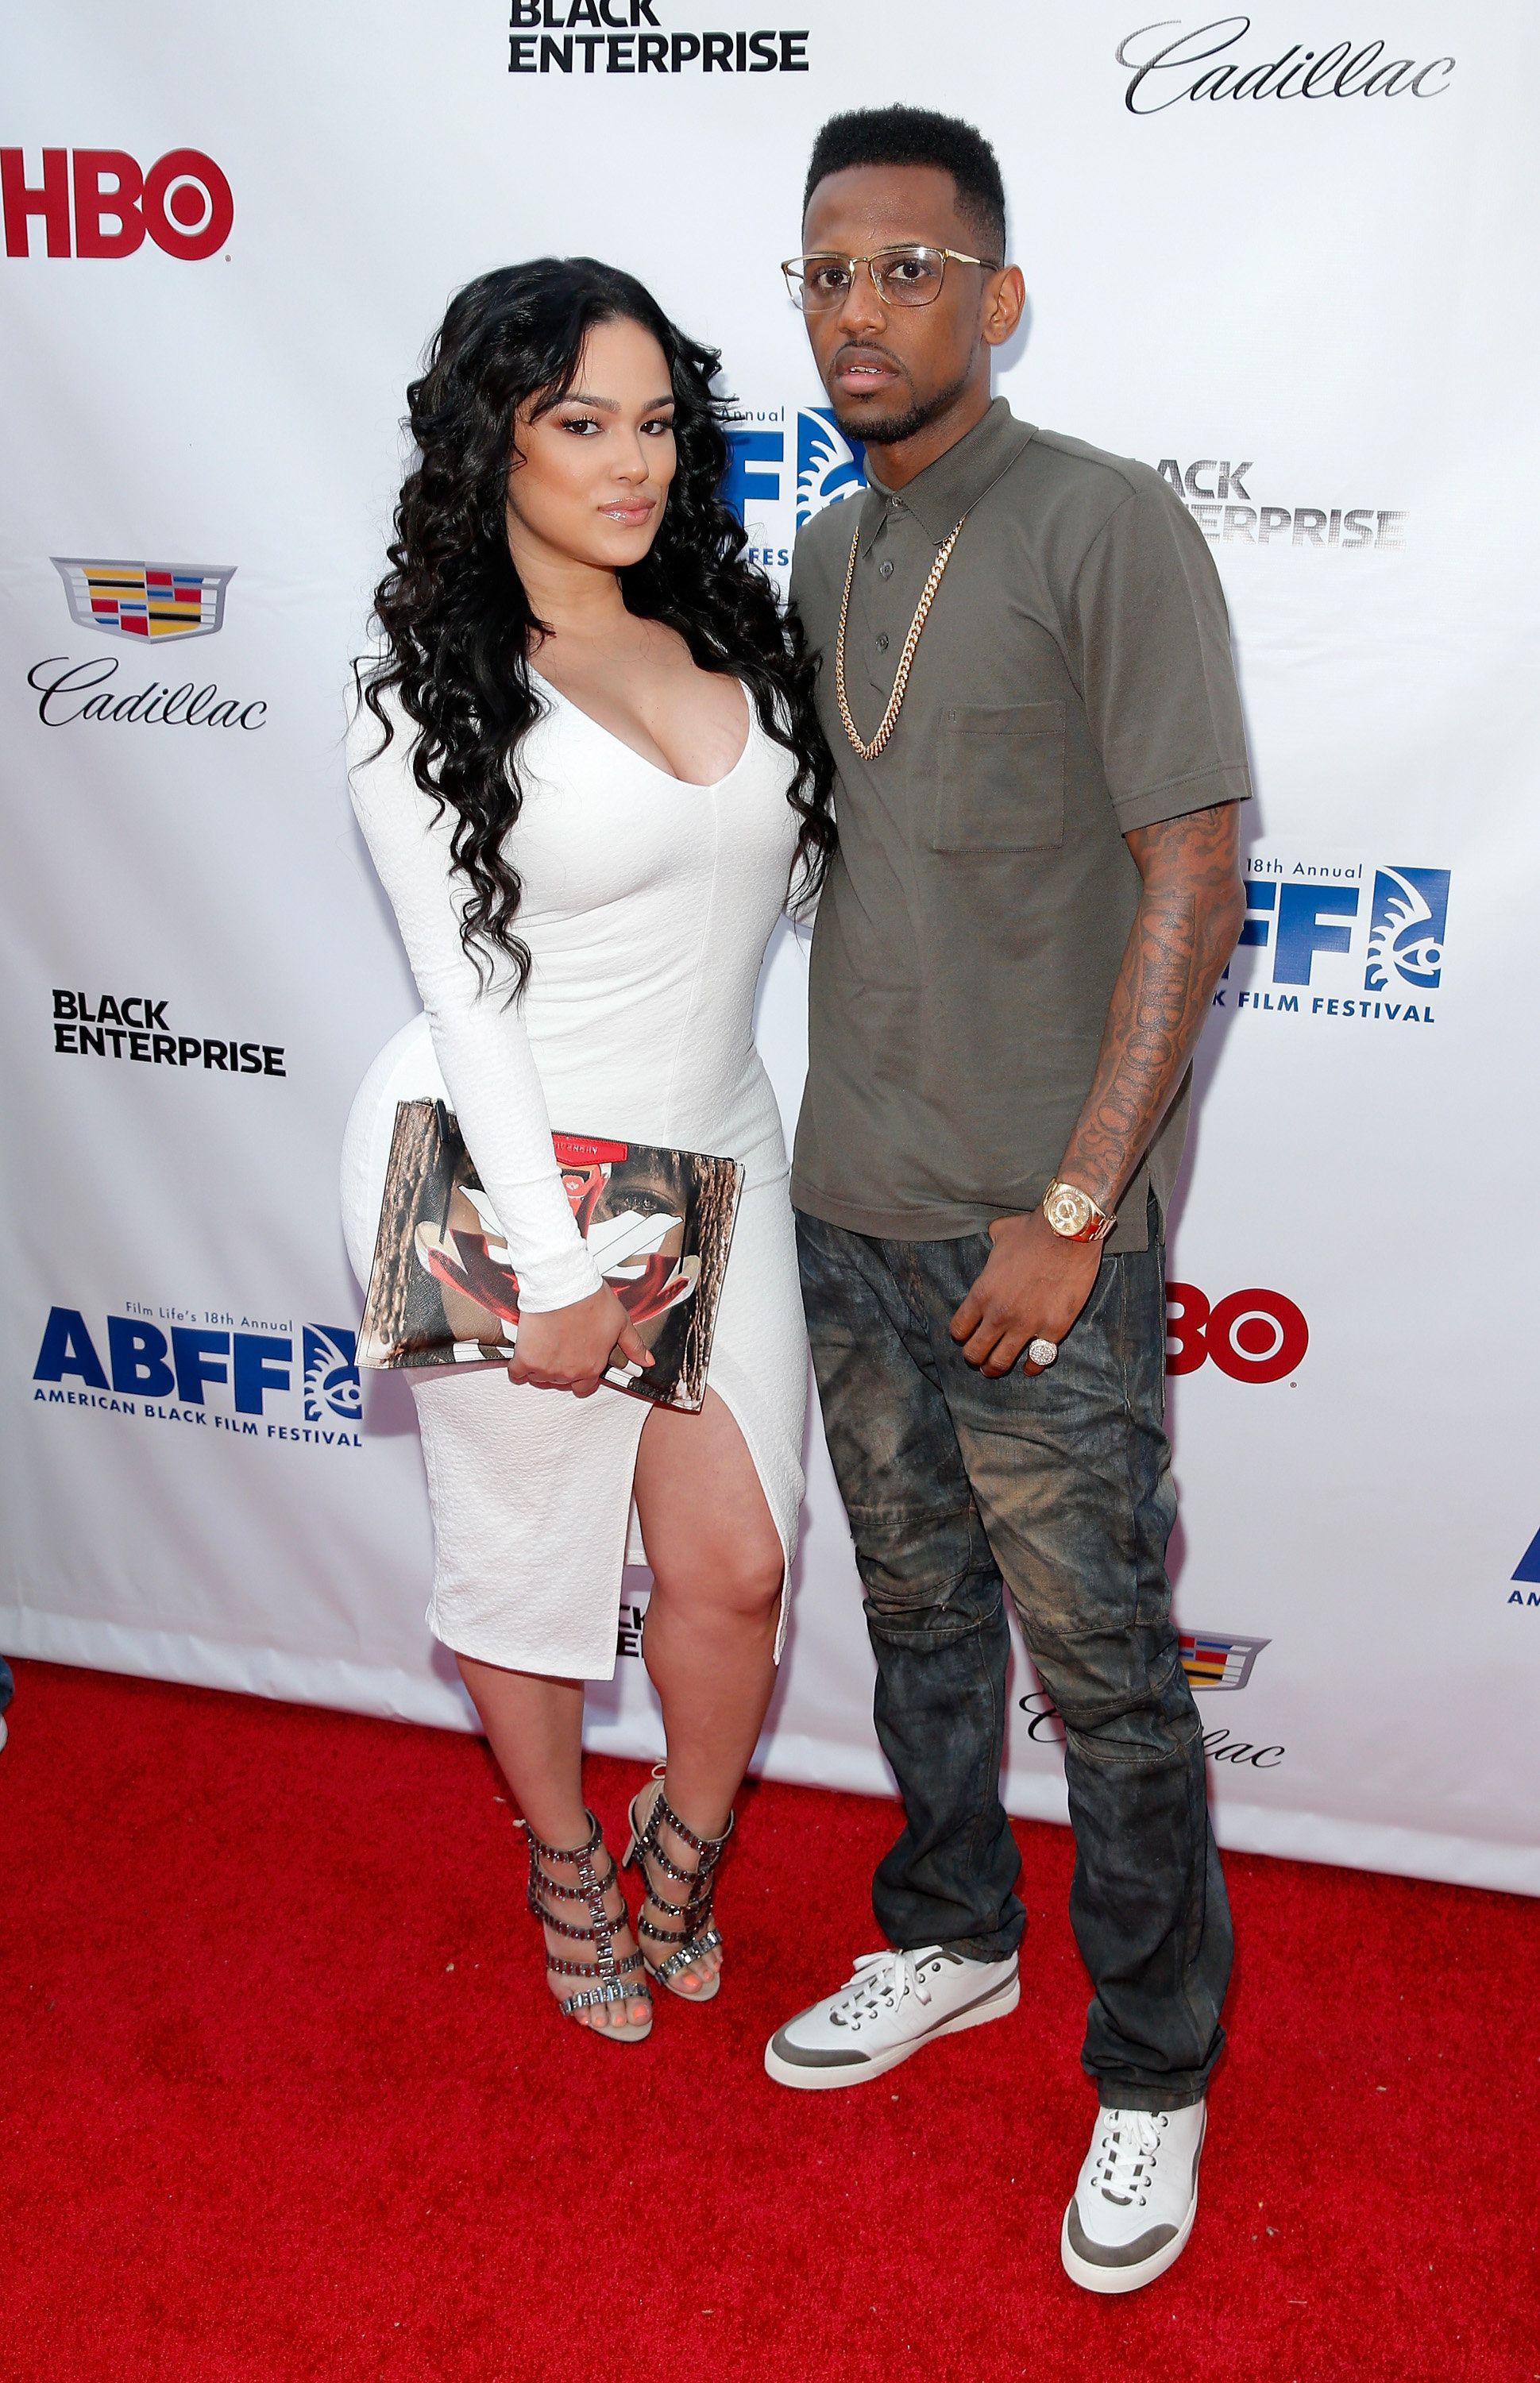 NEW YORK, NY - JUNE 19:  Emily B. and rapper Fabolous attend the 'Think Like A Man Too' premiere during the 2014 American Black Film Festival at SVA Theater on June 19, 2014 in New York City.  (Photo by J. Countess/WireImage)